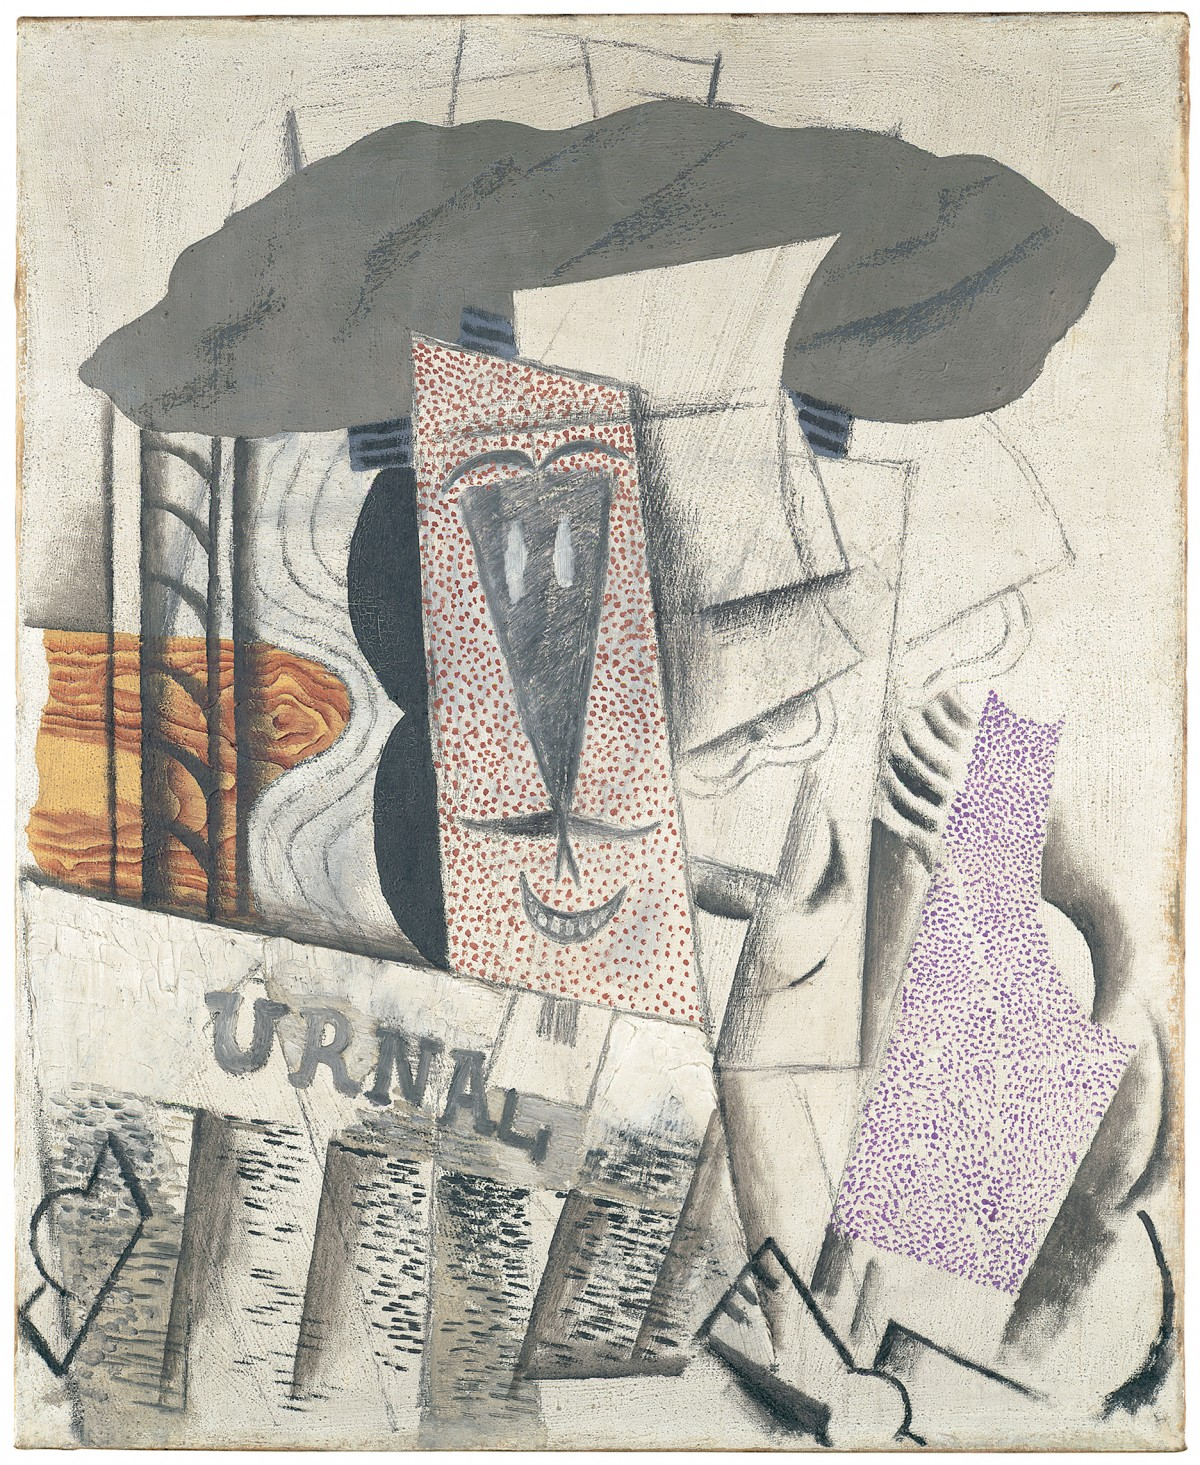 Image: Pablo Picasso, Student with Newspaper(L'etudiant au journal), 1913–14